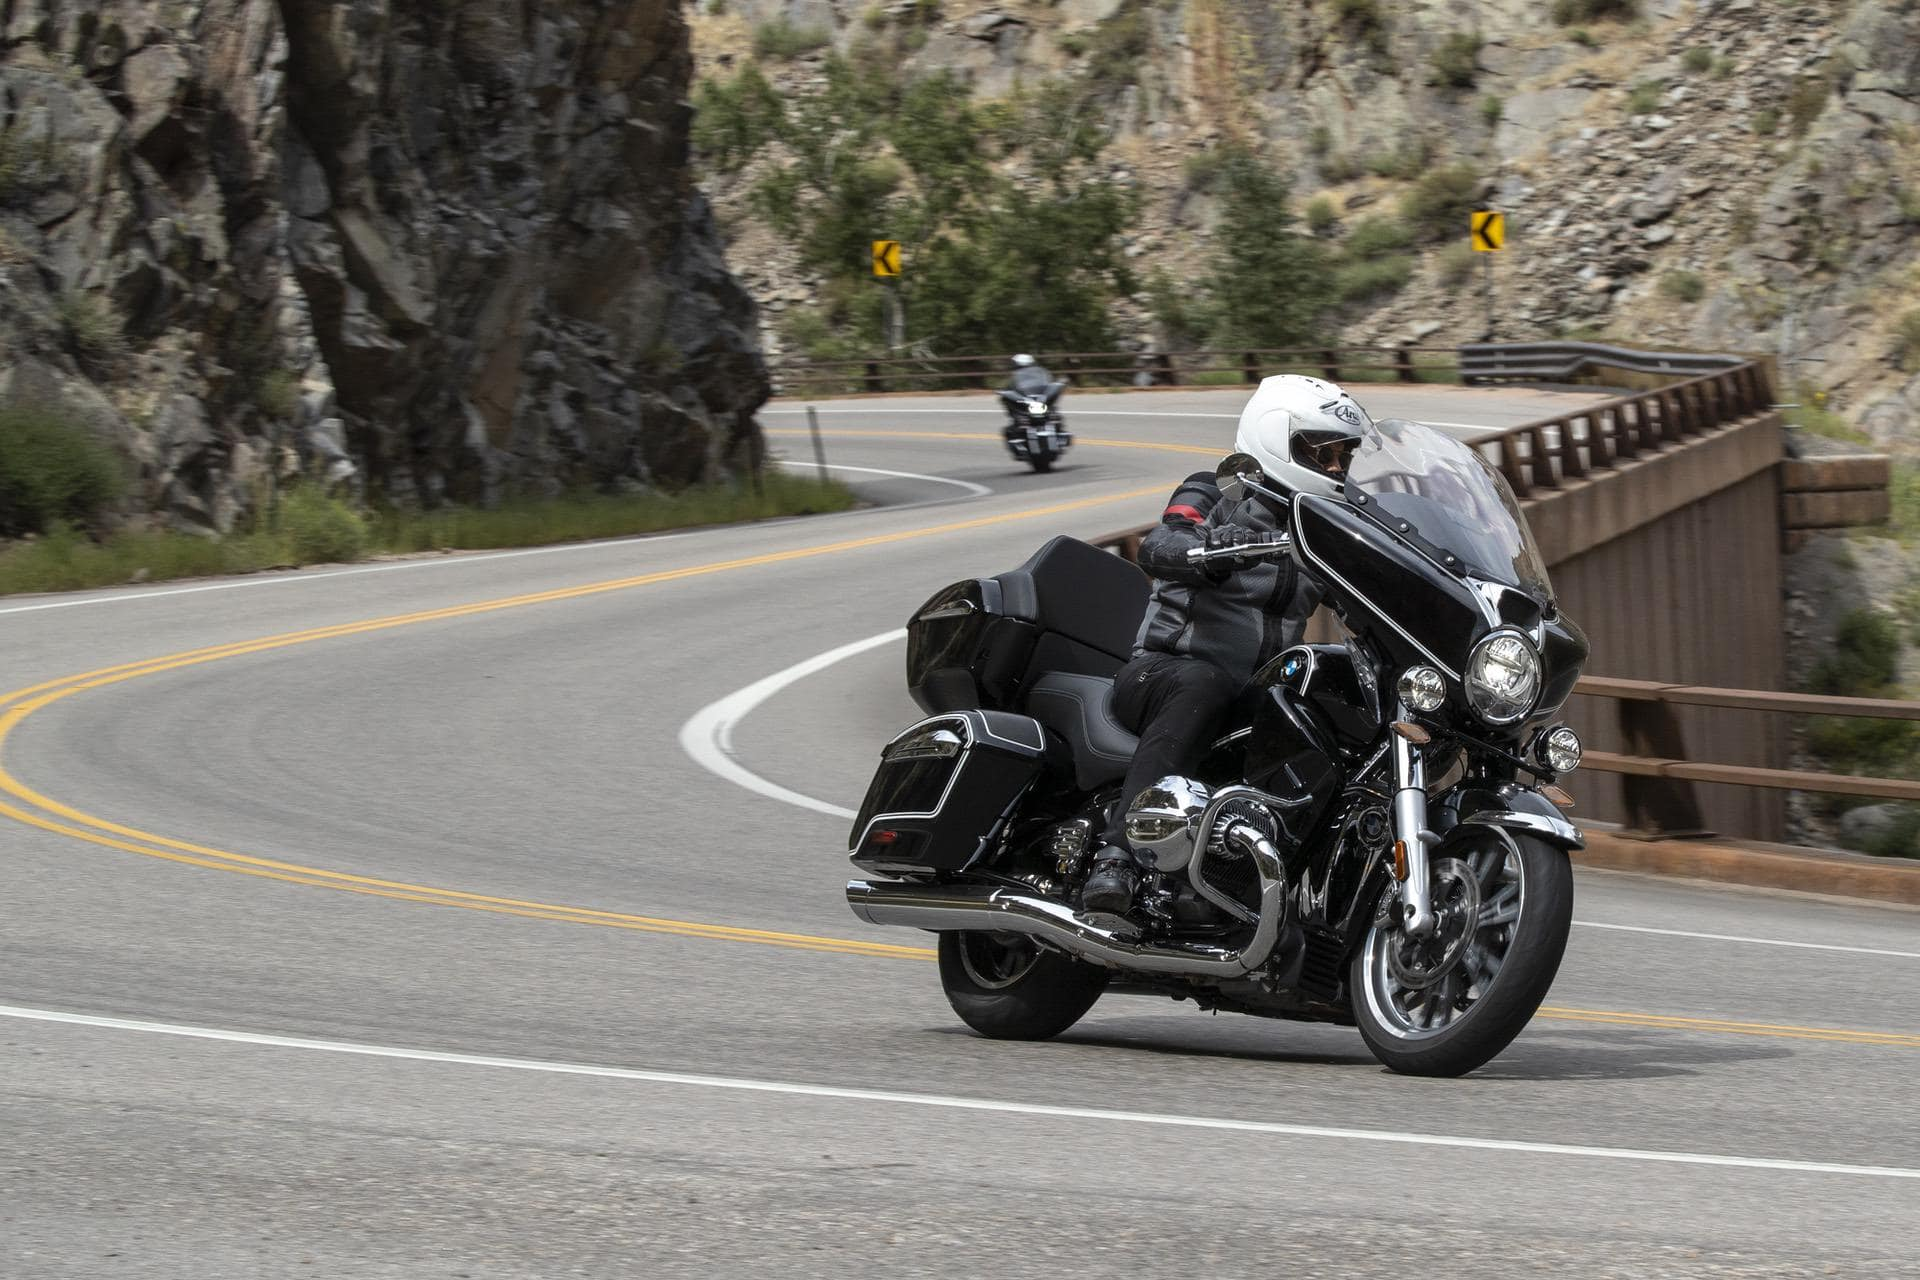 Test Riding the new BMW R18 B and R18 Transcontinental